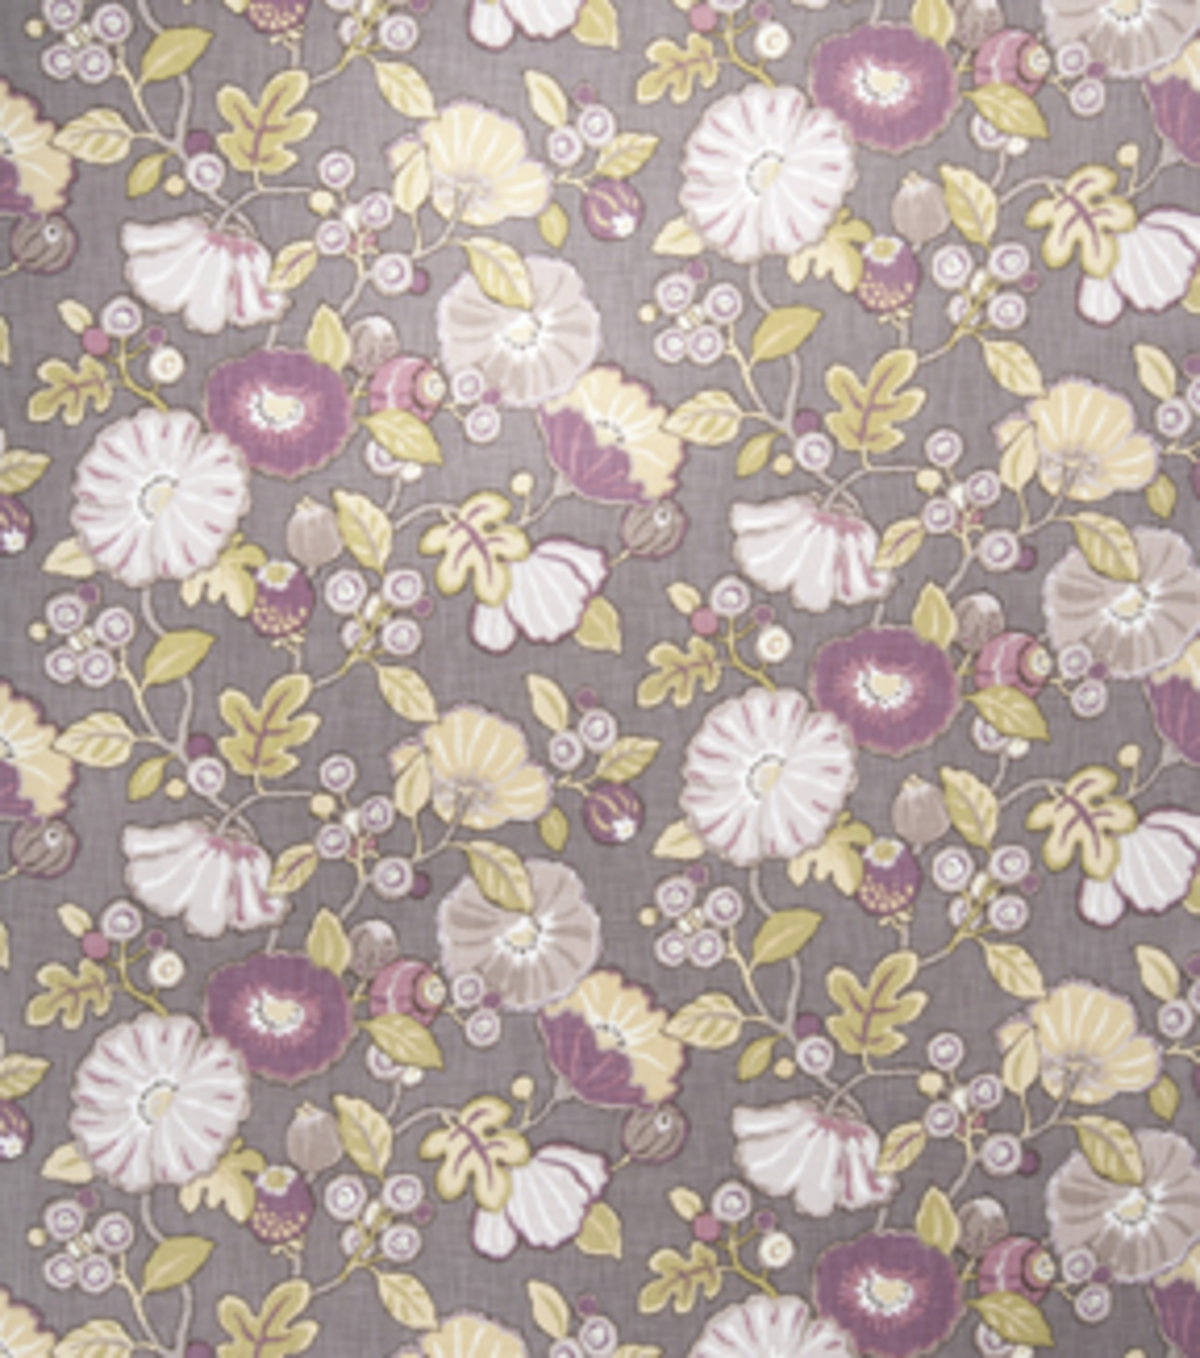 "Home Decor 8""x8"" Fabric Swatch-Upholstery Fabric Eaton Square Hendrix Berry"